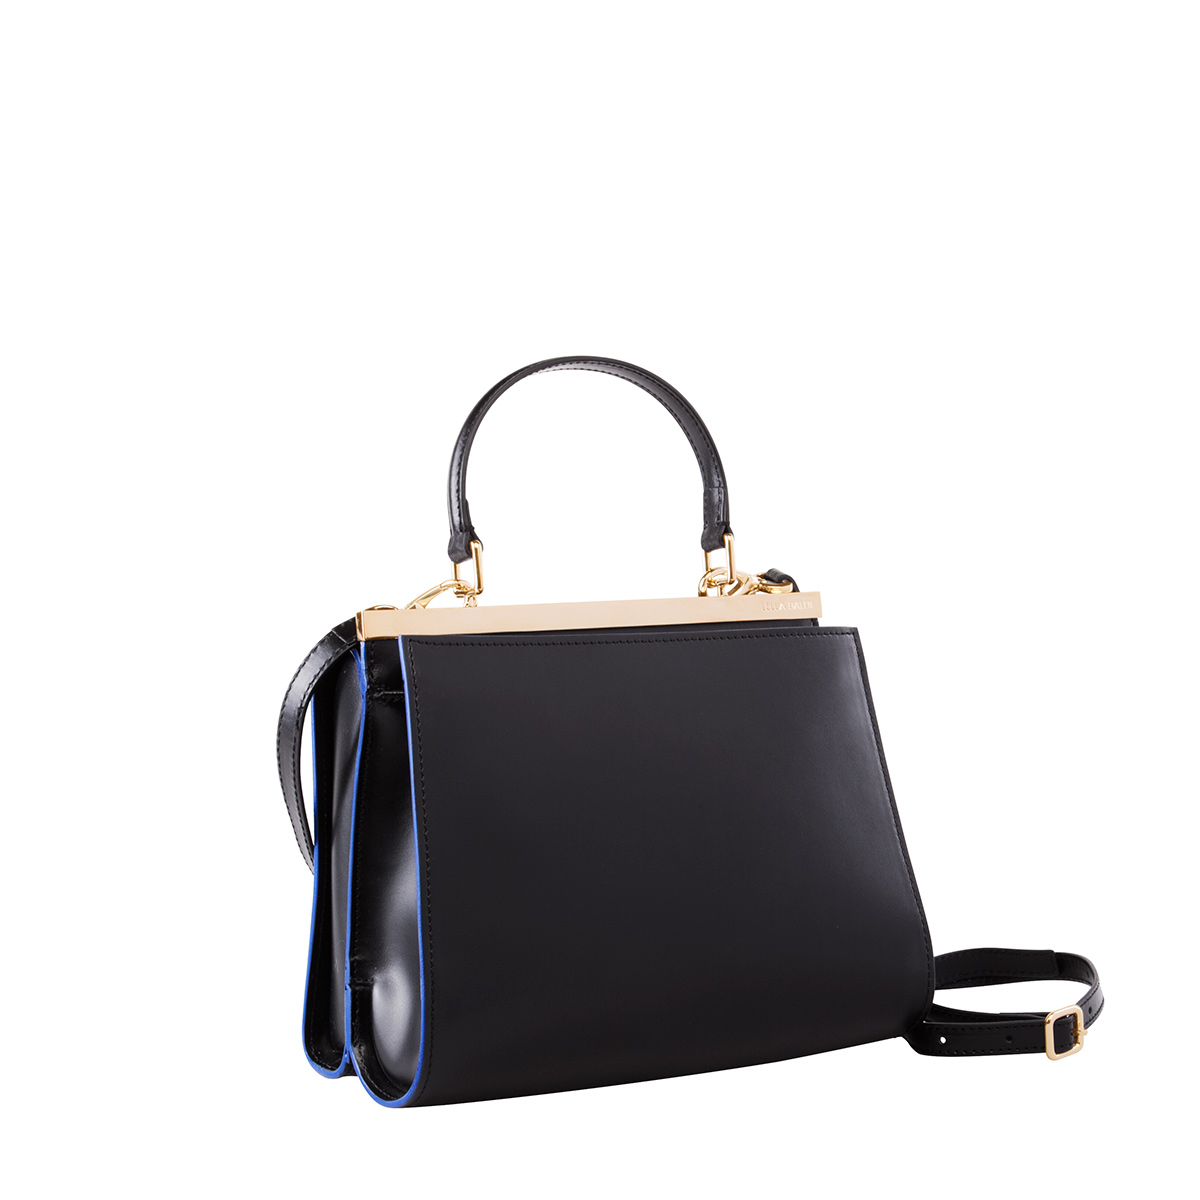 Wavy Bag Shoulder, Nero-Blu